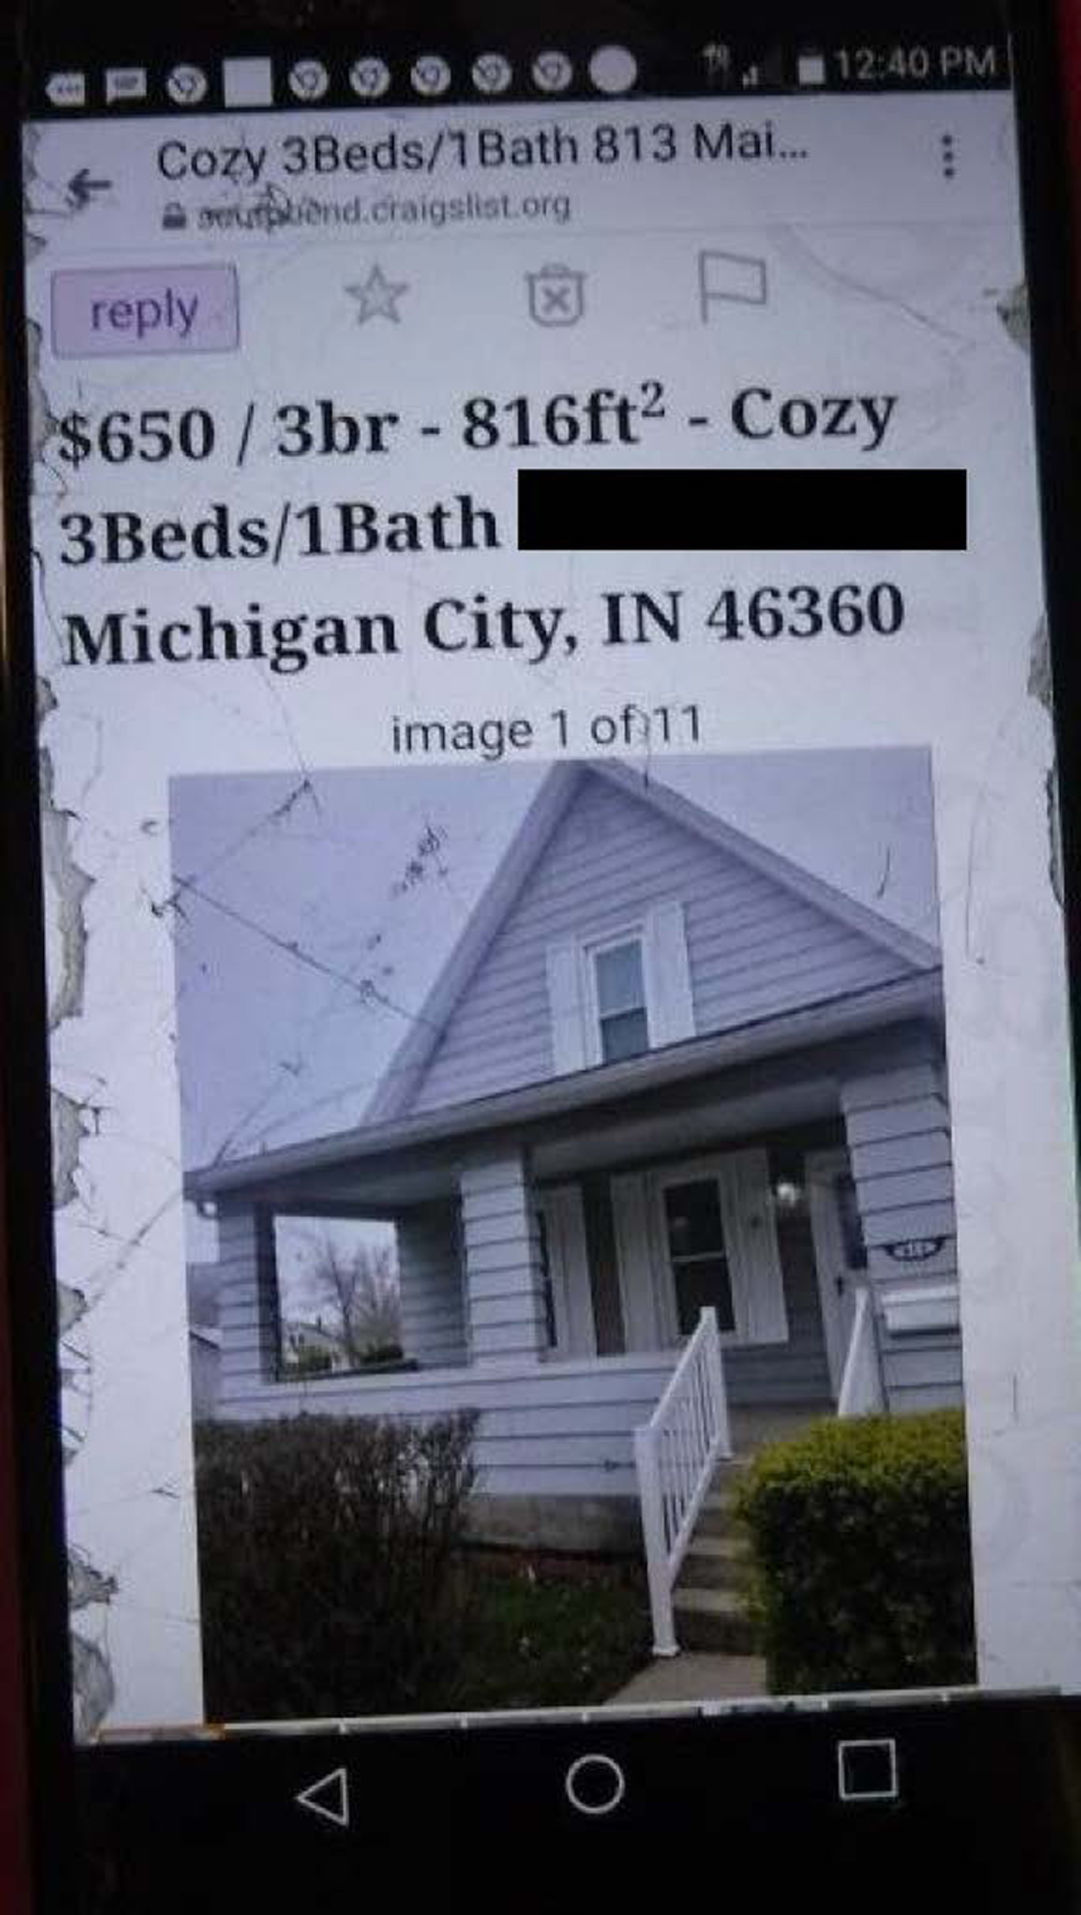 Craigslist scam discovered in Michigan City | Local News ...